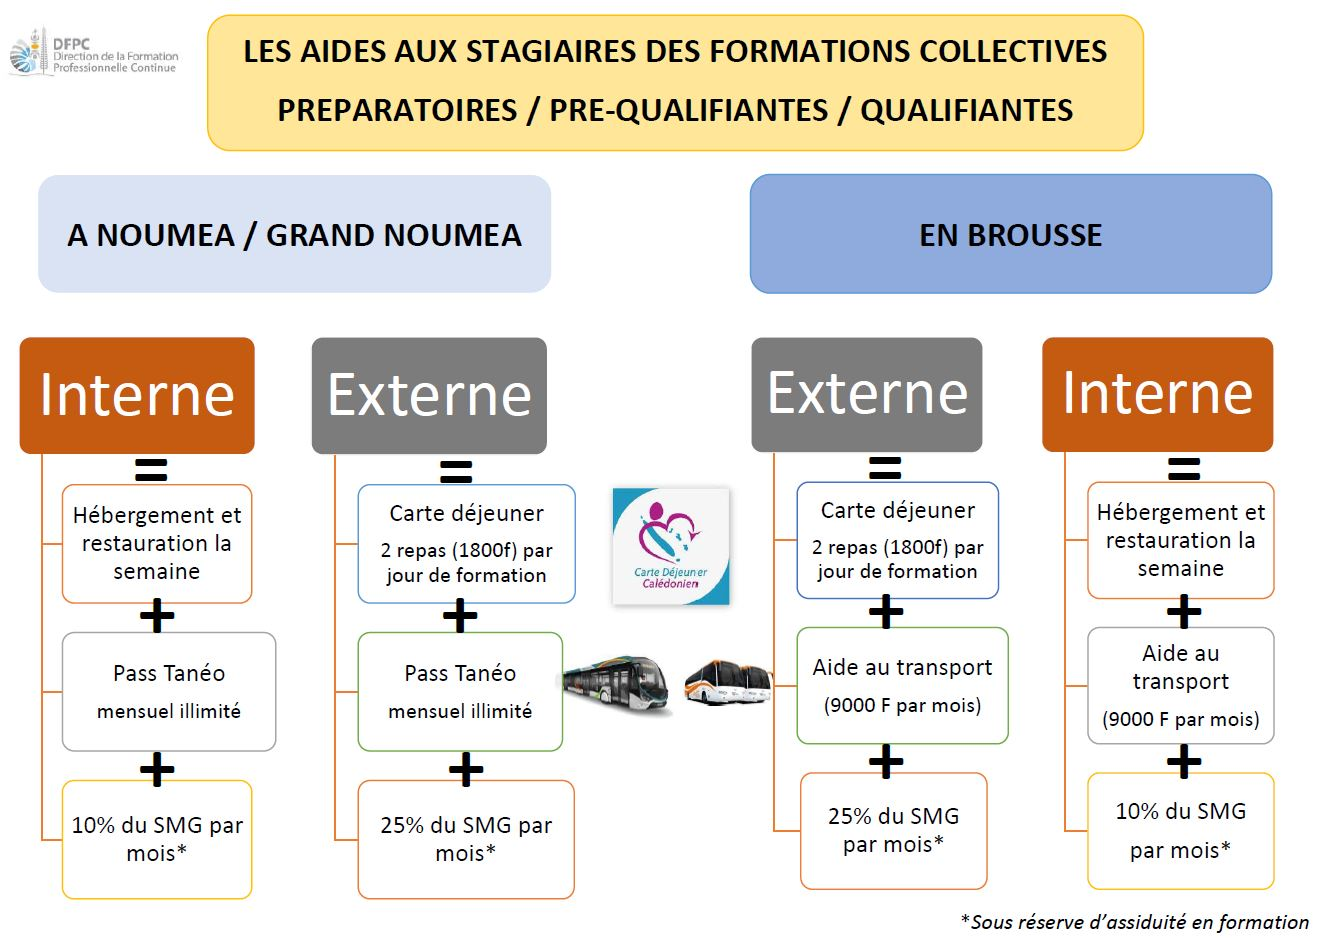 Aide aux stagiaires des formations collectives